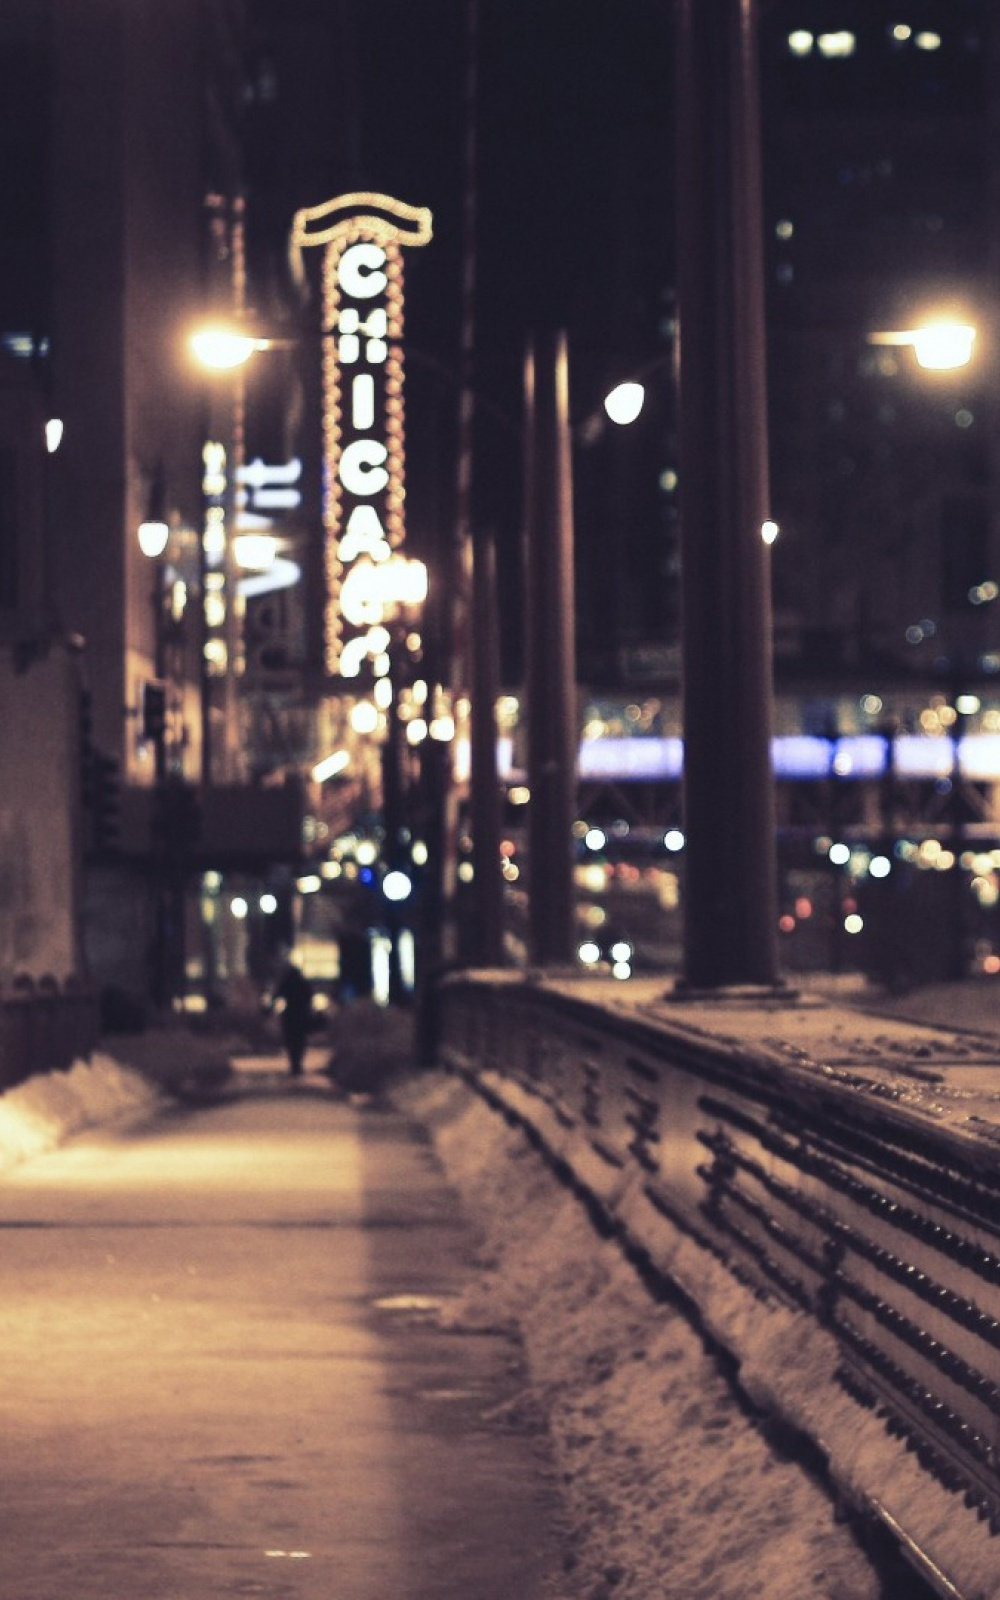 Chicago Snow Street Mobile Wallpaper Mobiles Wall